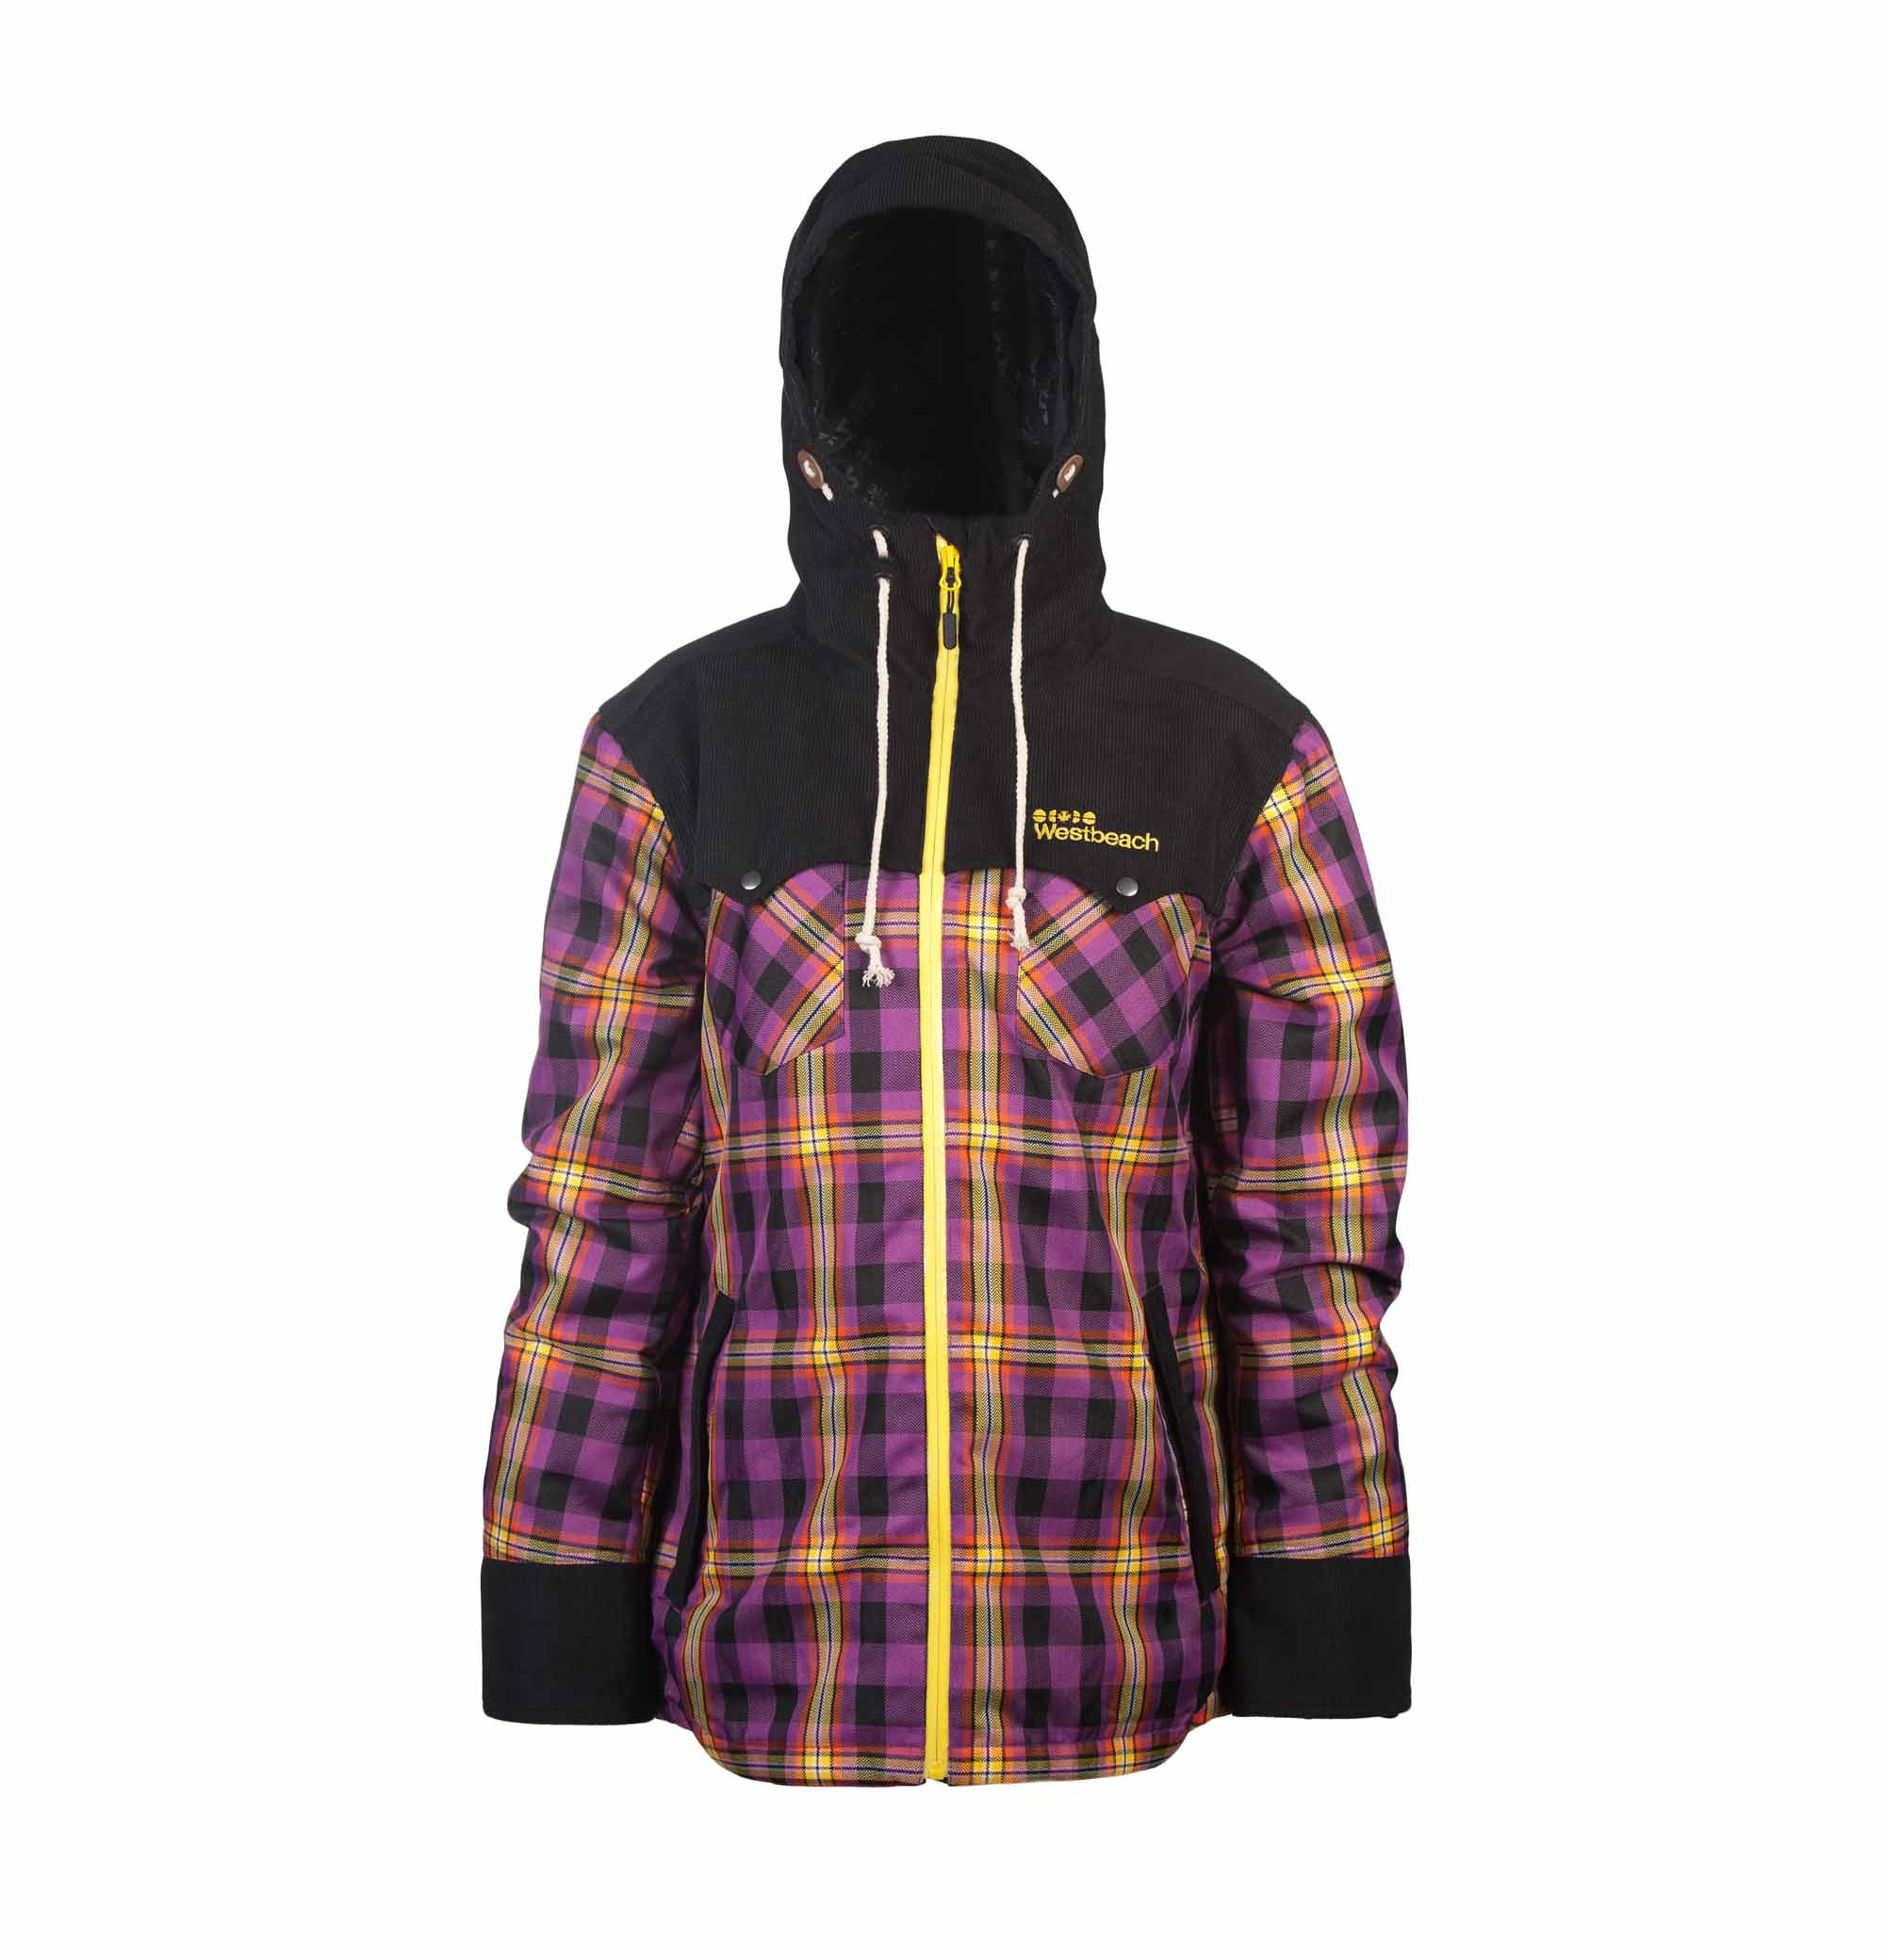 http://www.snowrepublic.co.uk/images/jackets/Caprice_dew_plaid.jpg